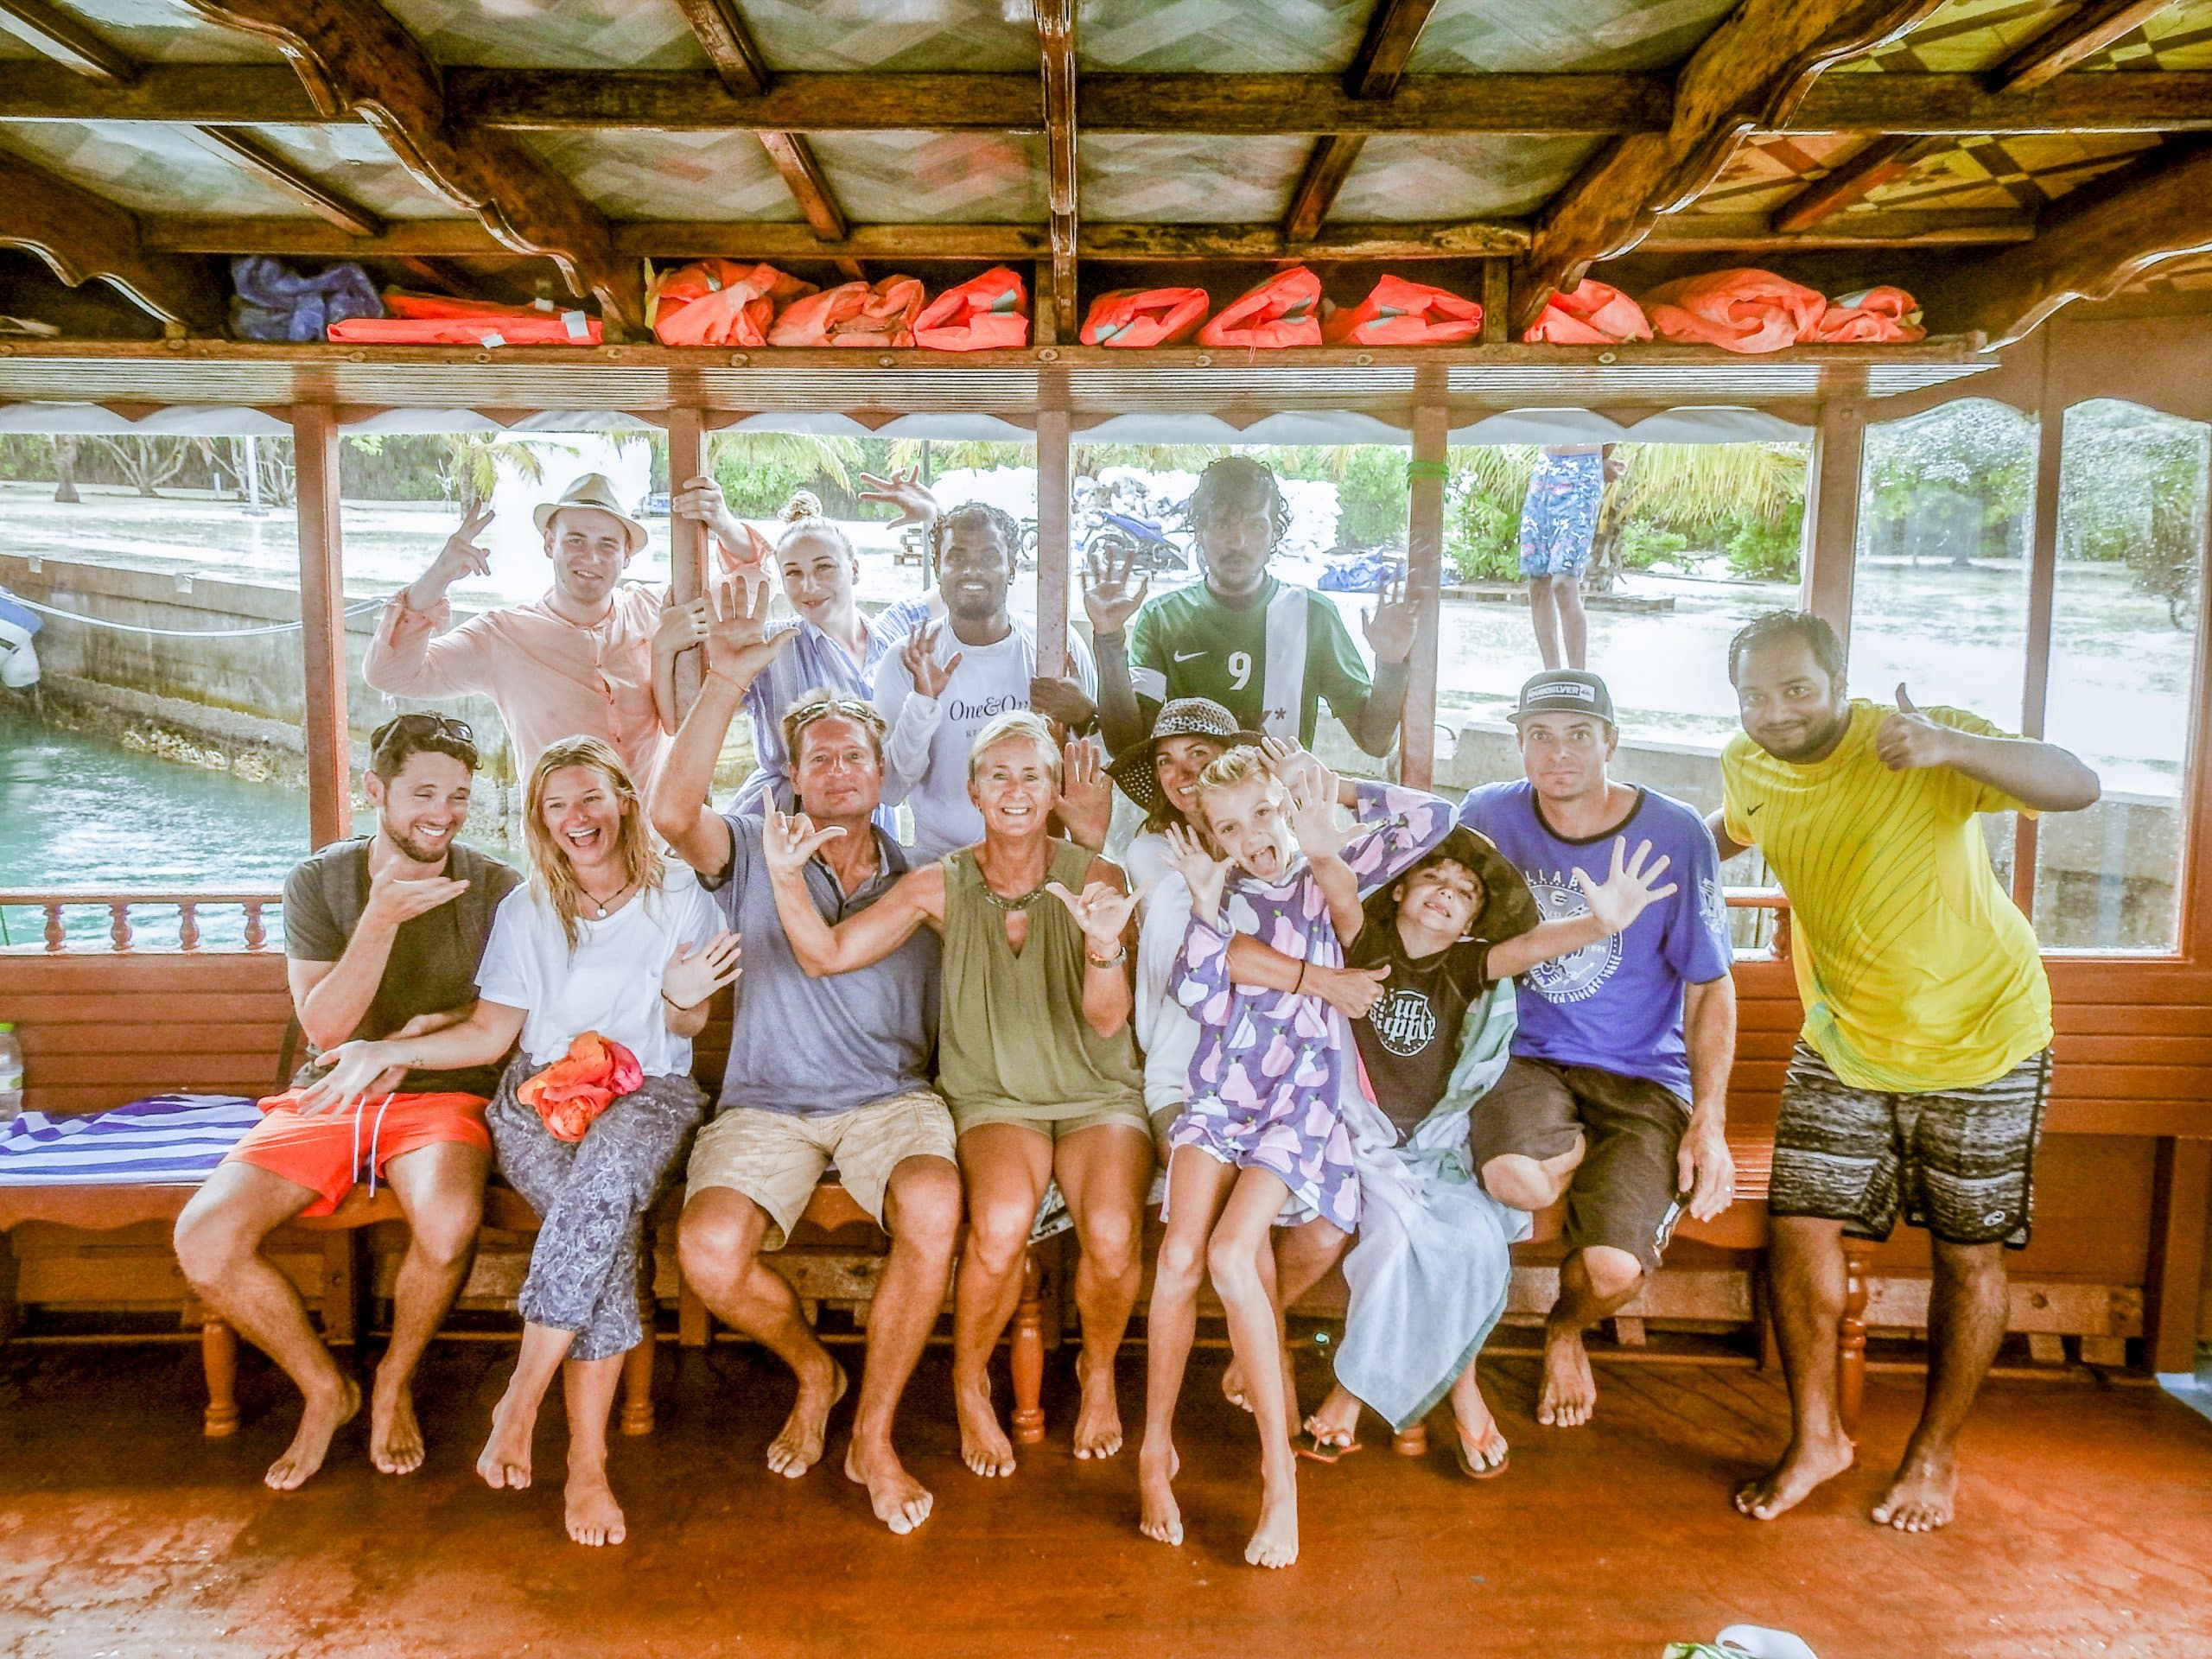 Group excursion - Bliss Dhigurah's guests on the excursion boat ready for whale shark snorkeling